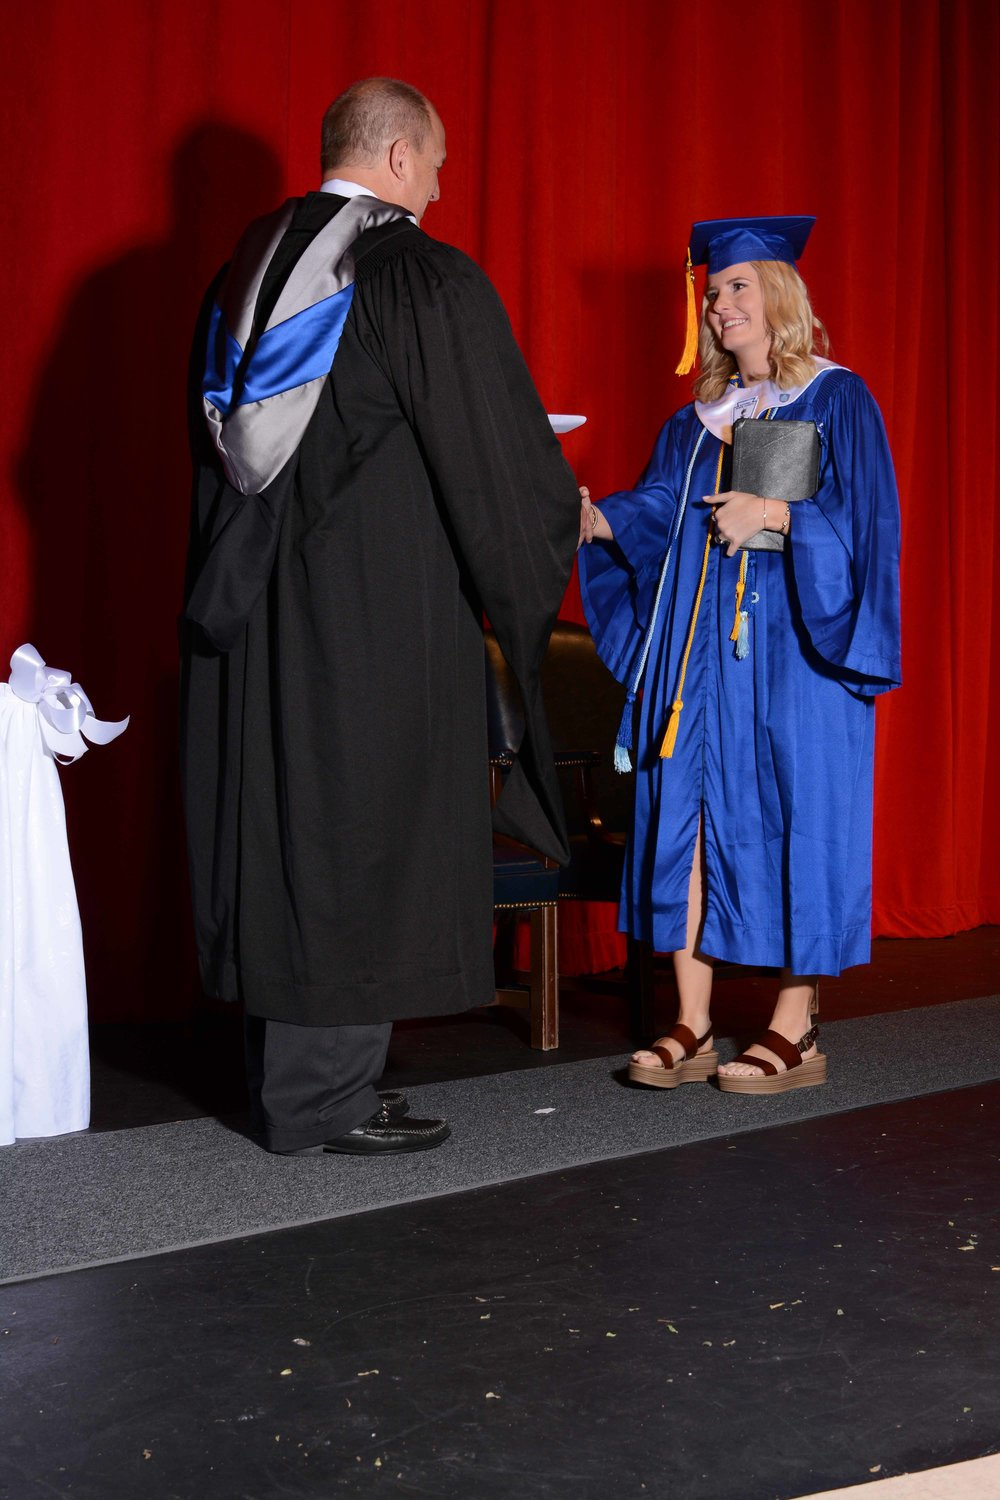 May15 HardingGraduation14.jpg